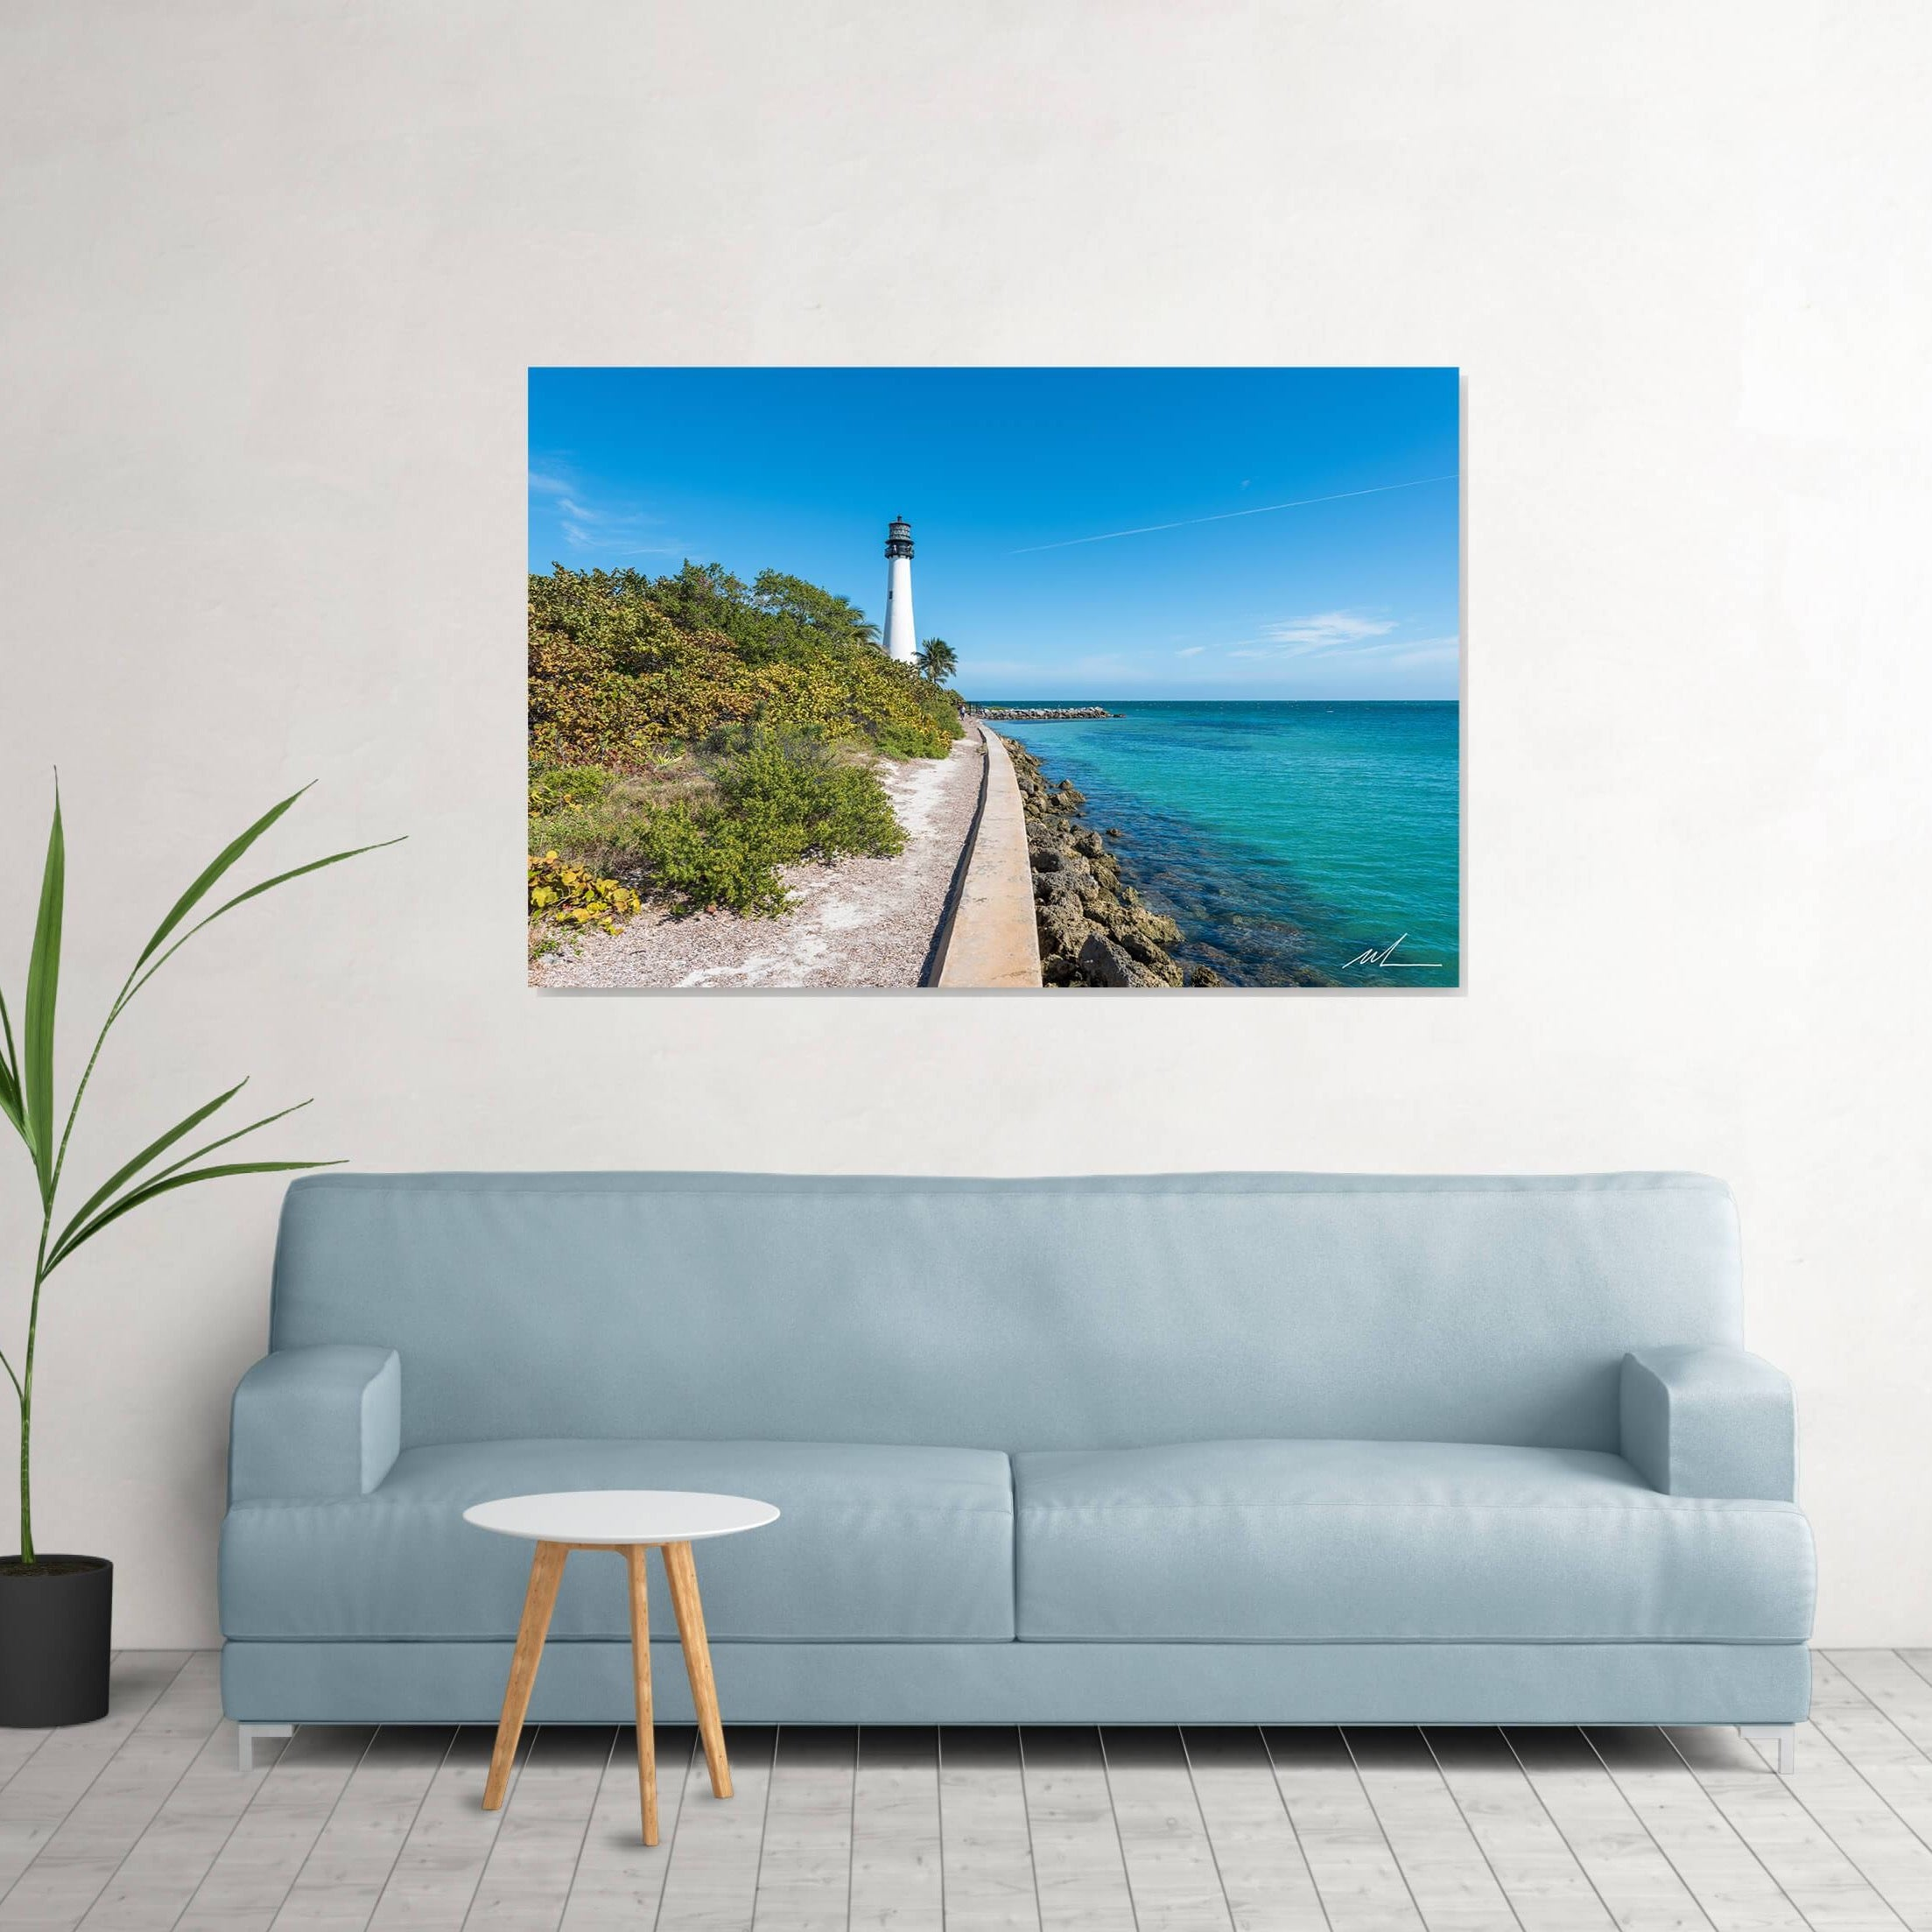 Lighthouse photo in living room